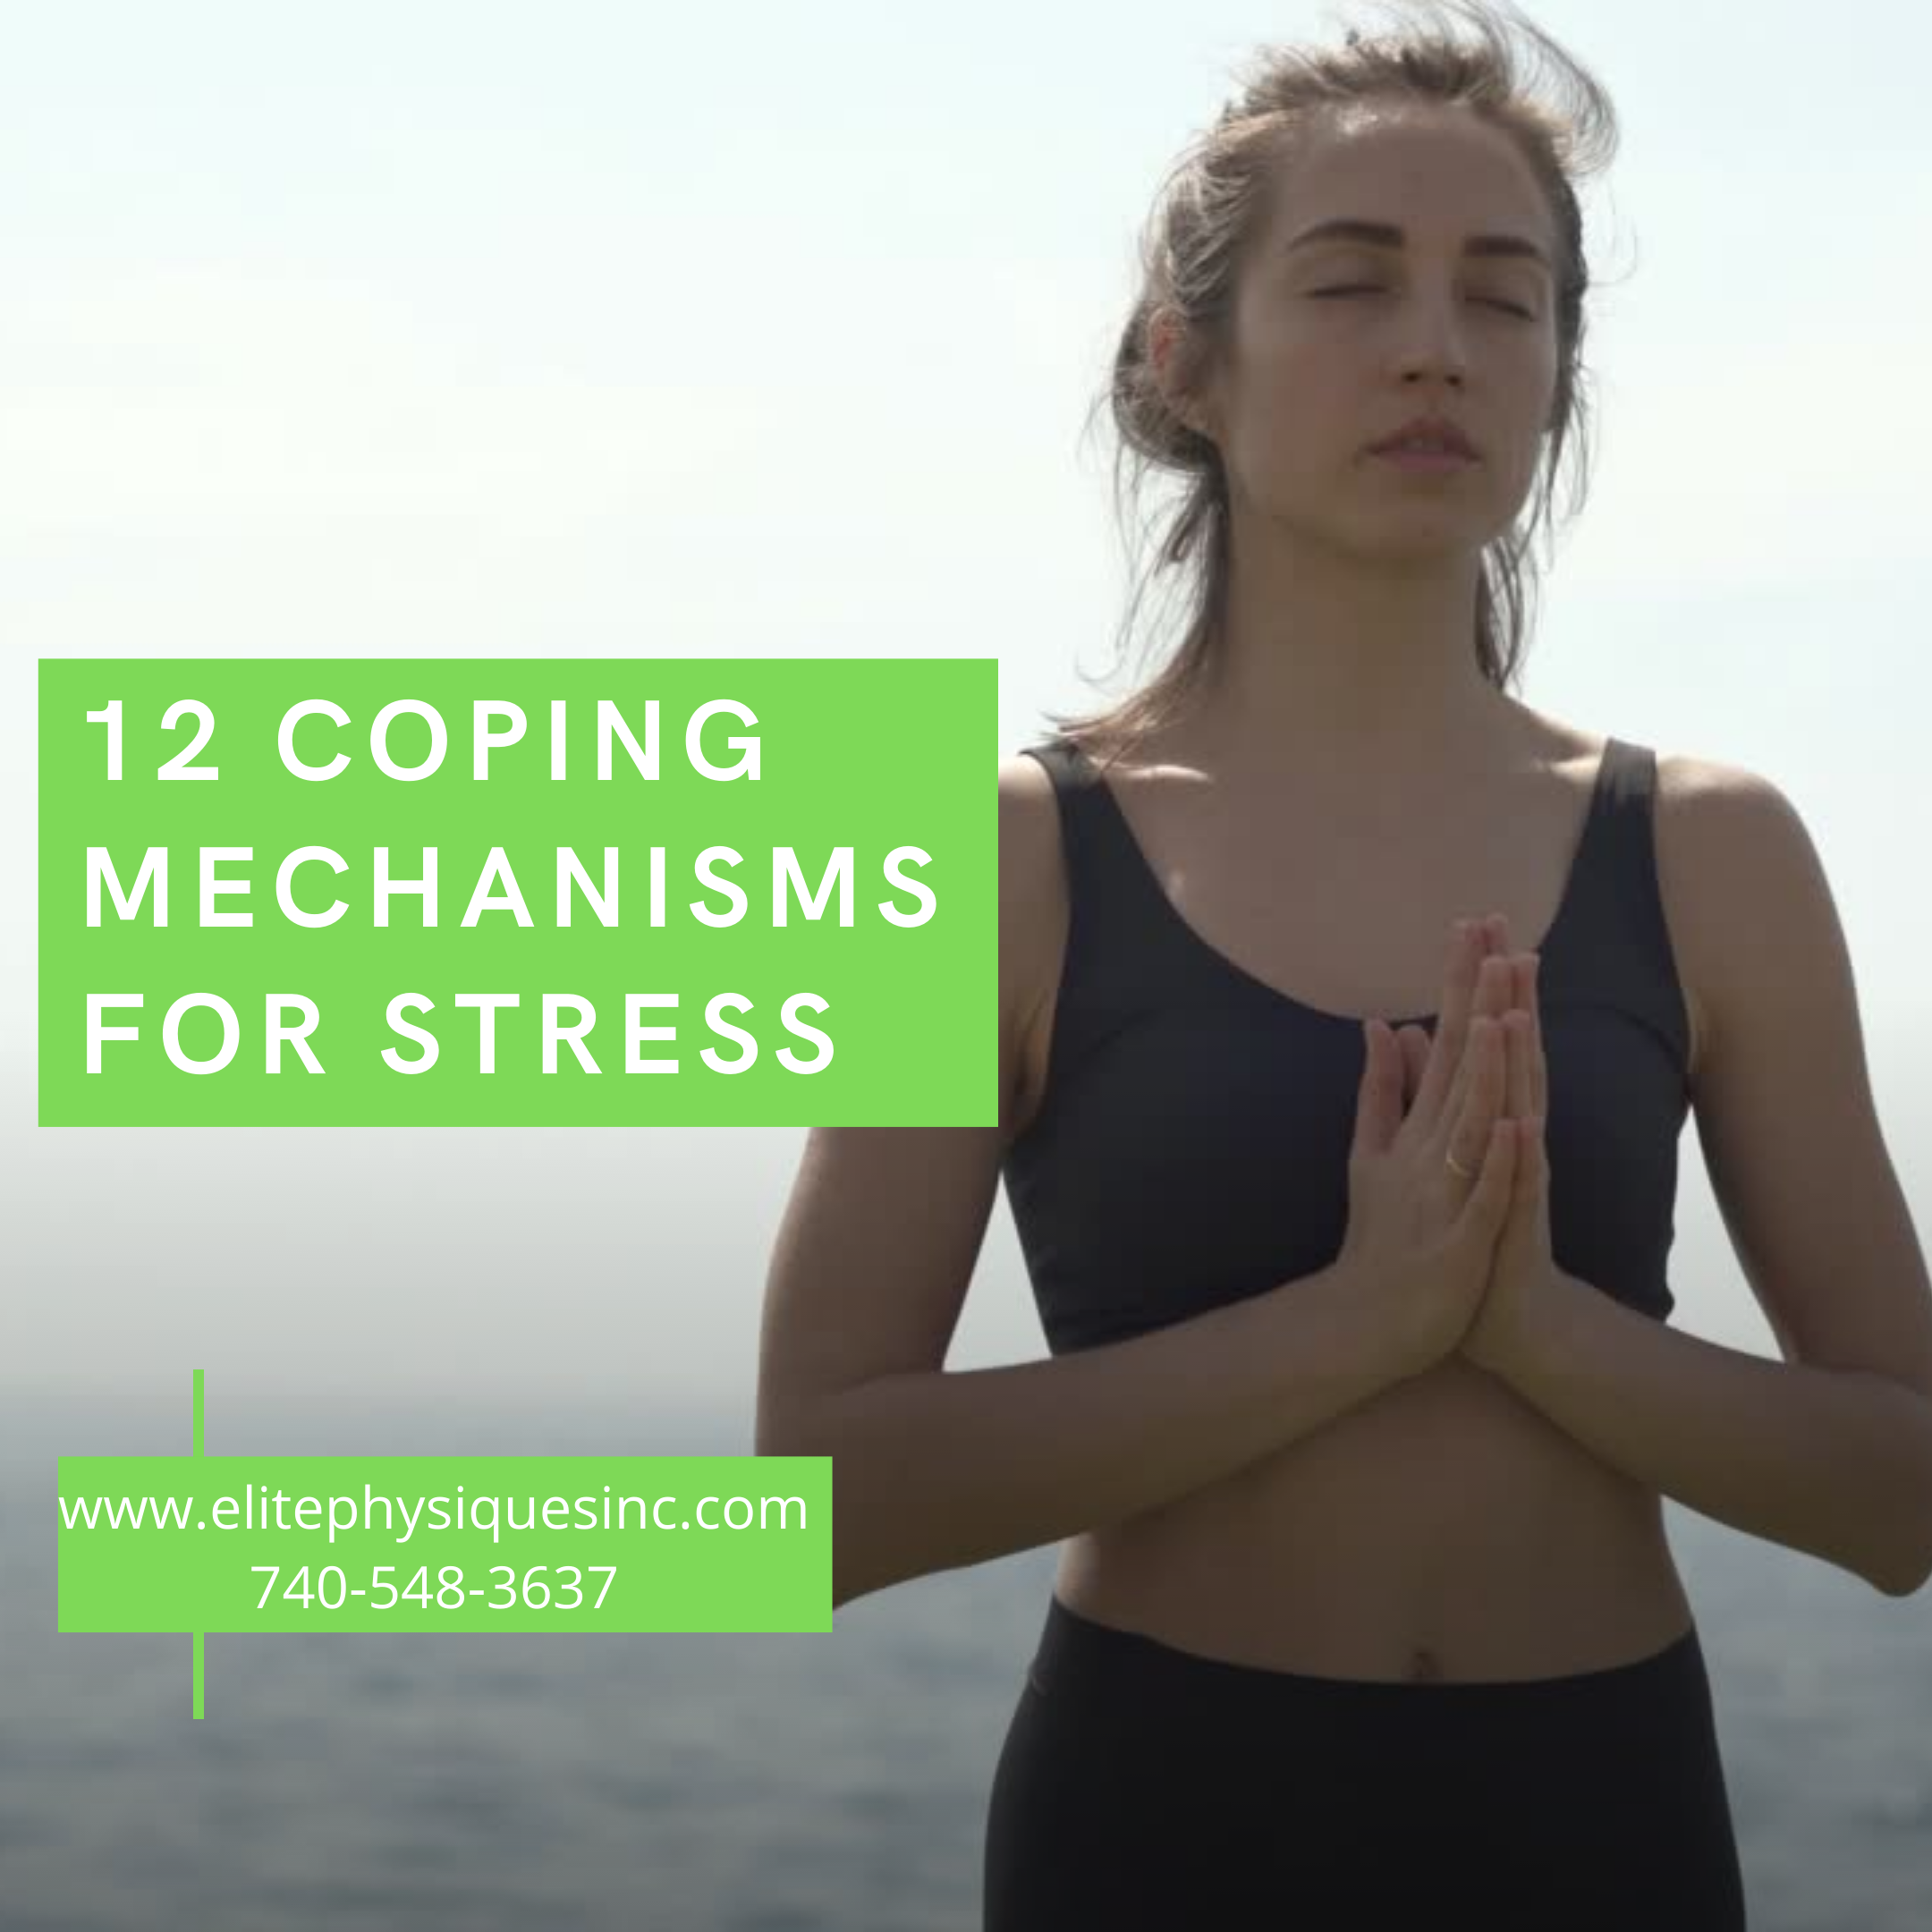 12 Coping Mechanisms for Stress